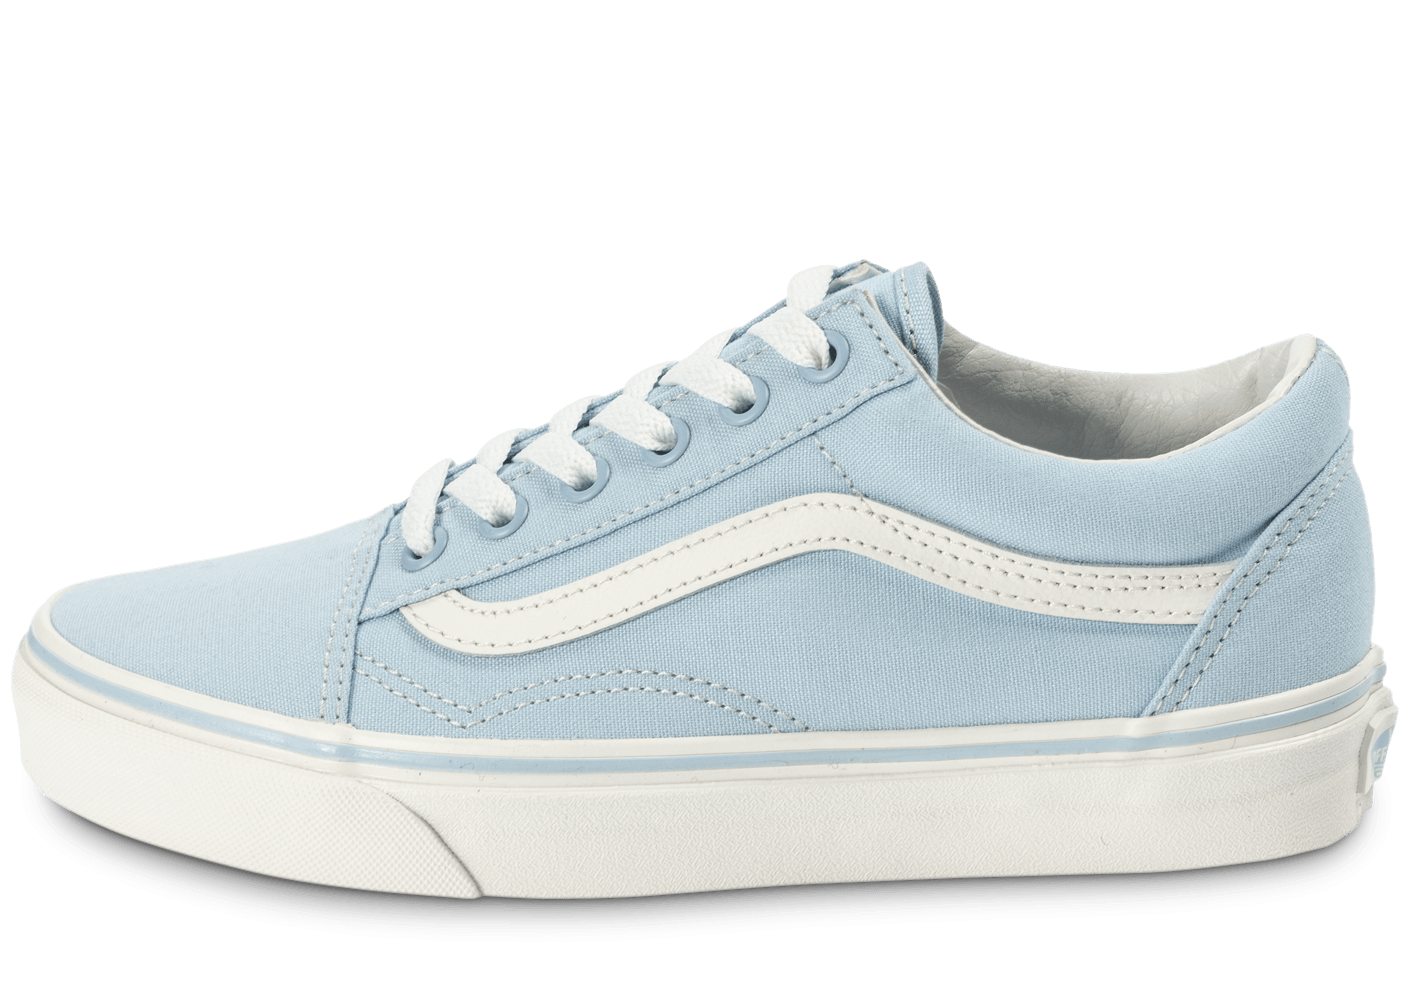 Old Skyway Bleue Chausport Chaussures Skool Vans UOxwFO